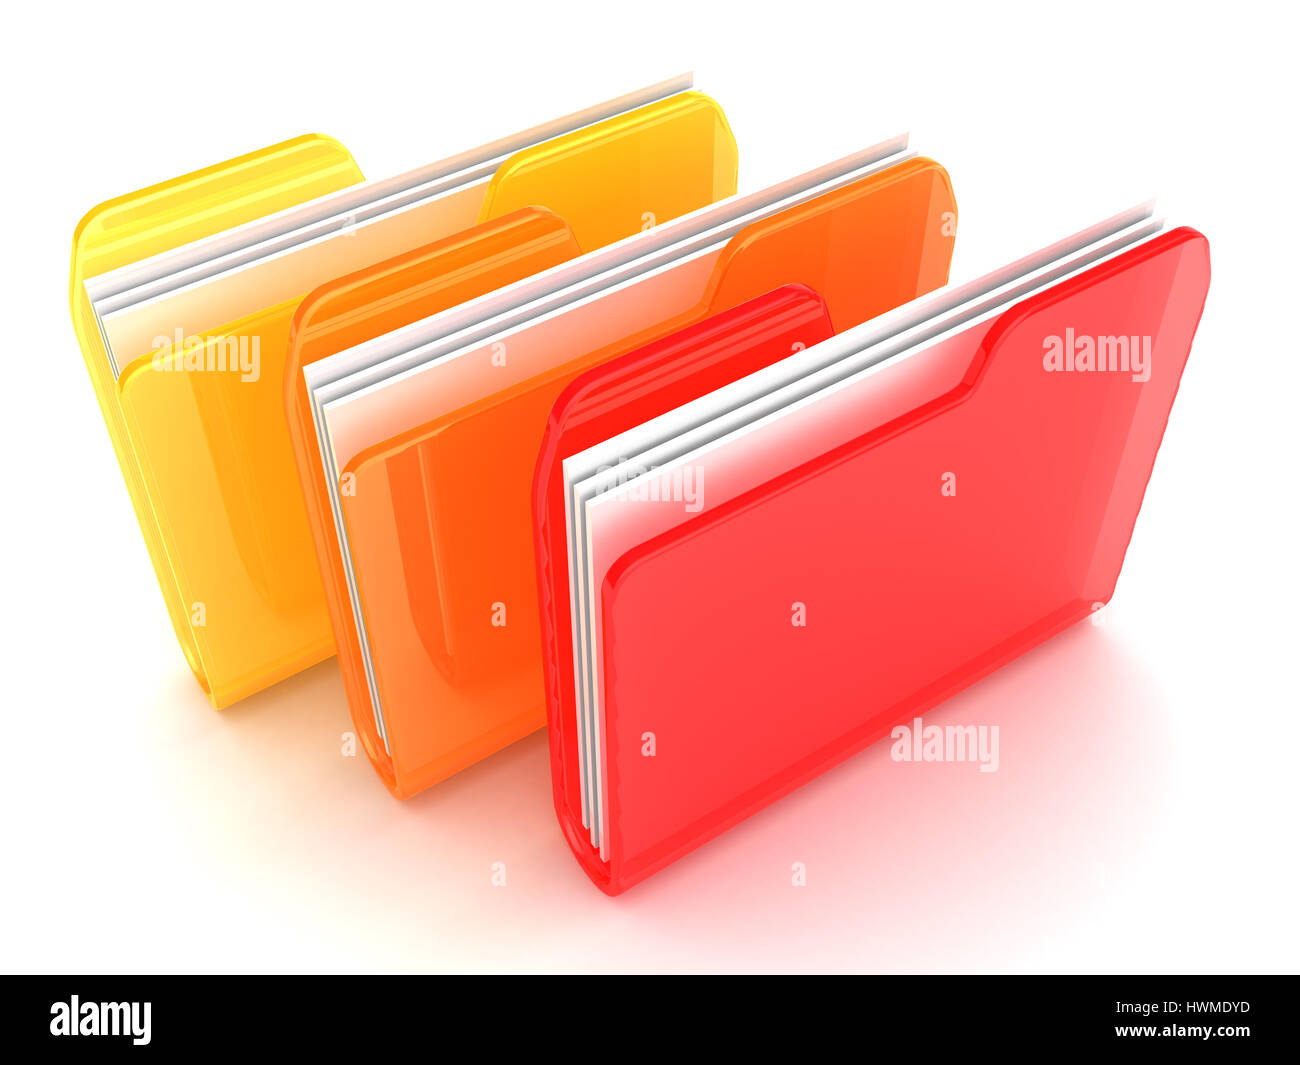 3d illustration of three folders ornage and red colors - Stock Image